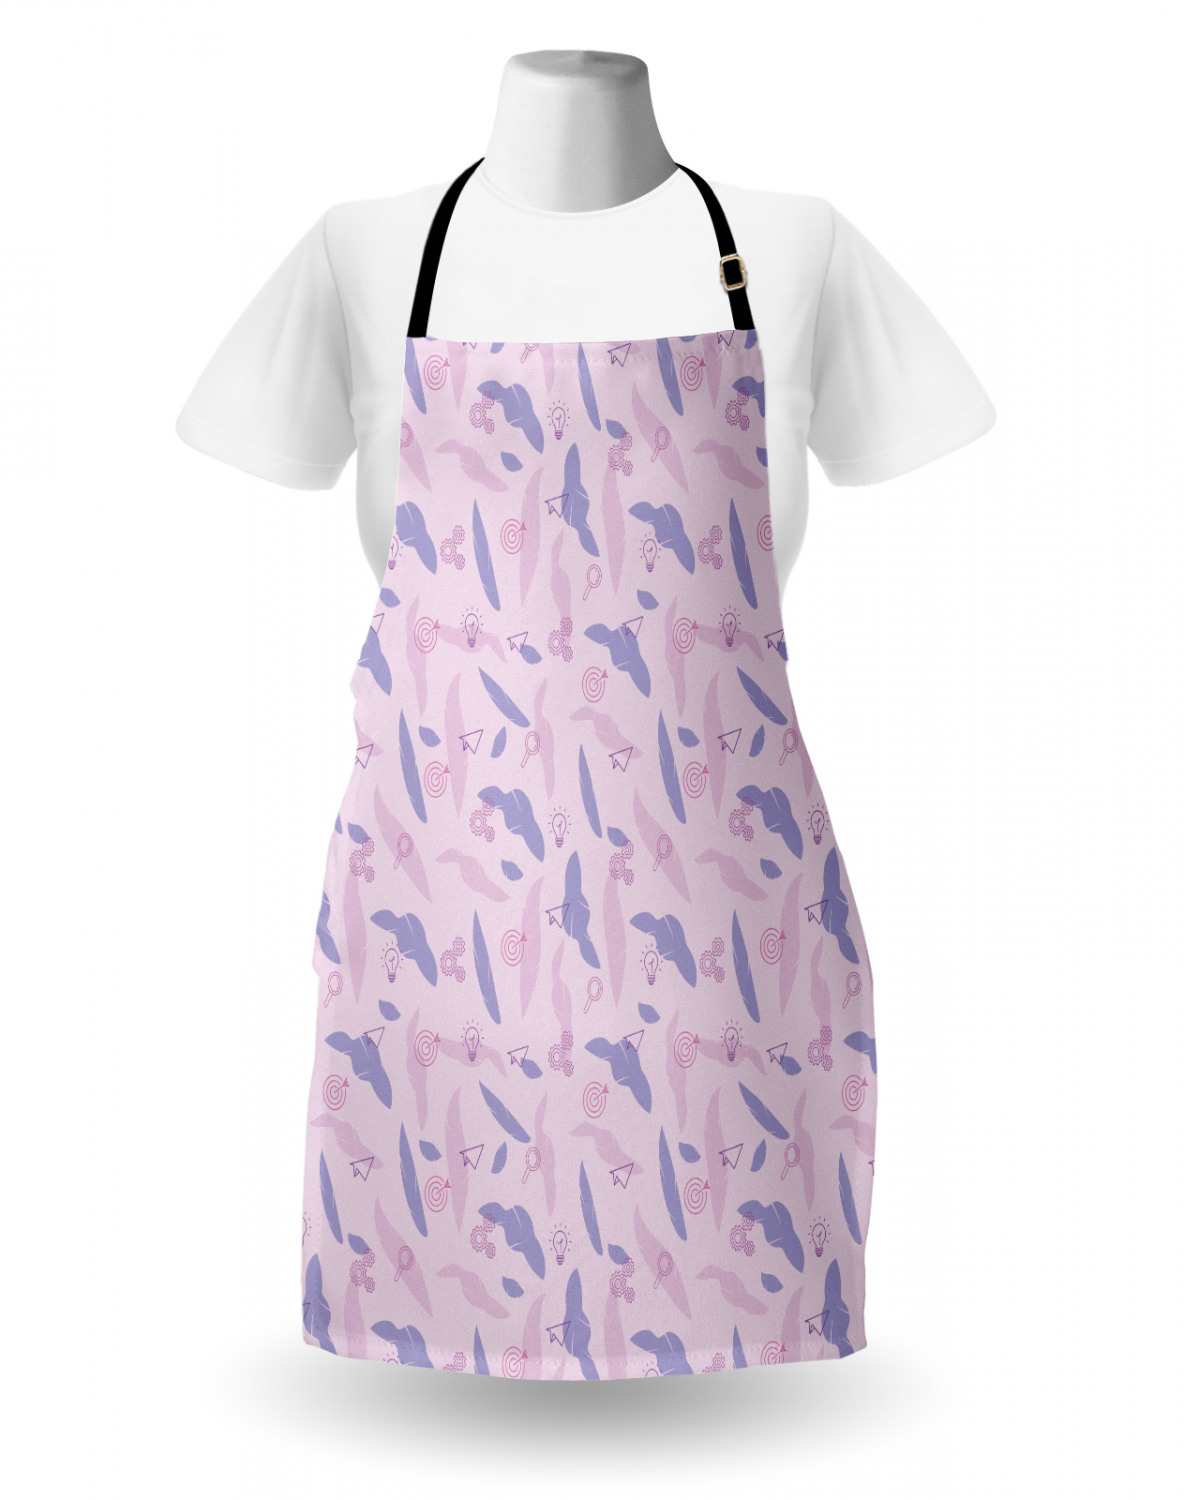 Ambesonne-Outdoor-Use-Apron-with-Adjustable-Neck-Strap-for-Gardening-and-Cooking miniatura 122